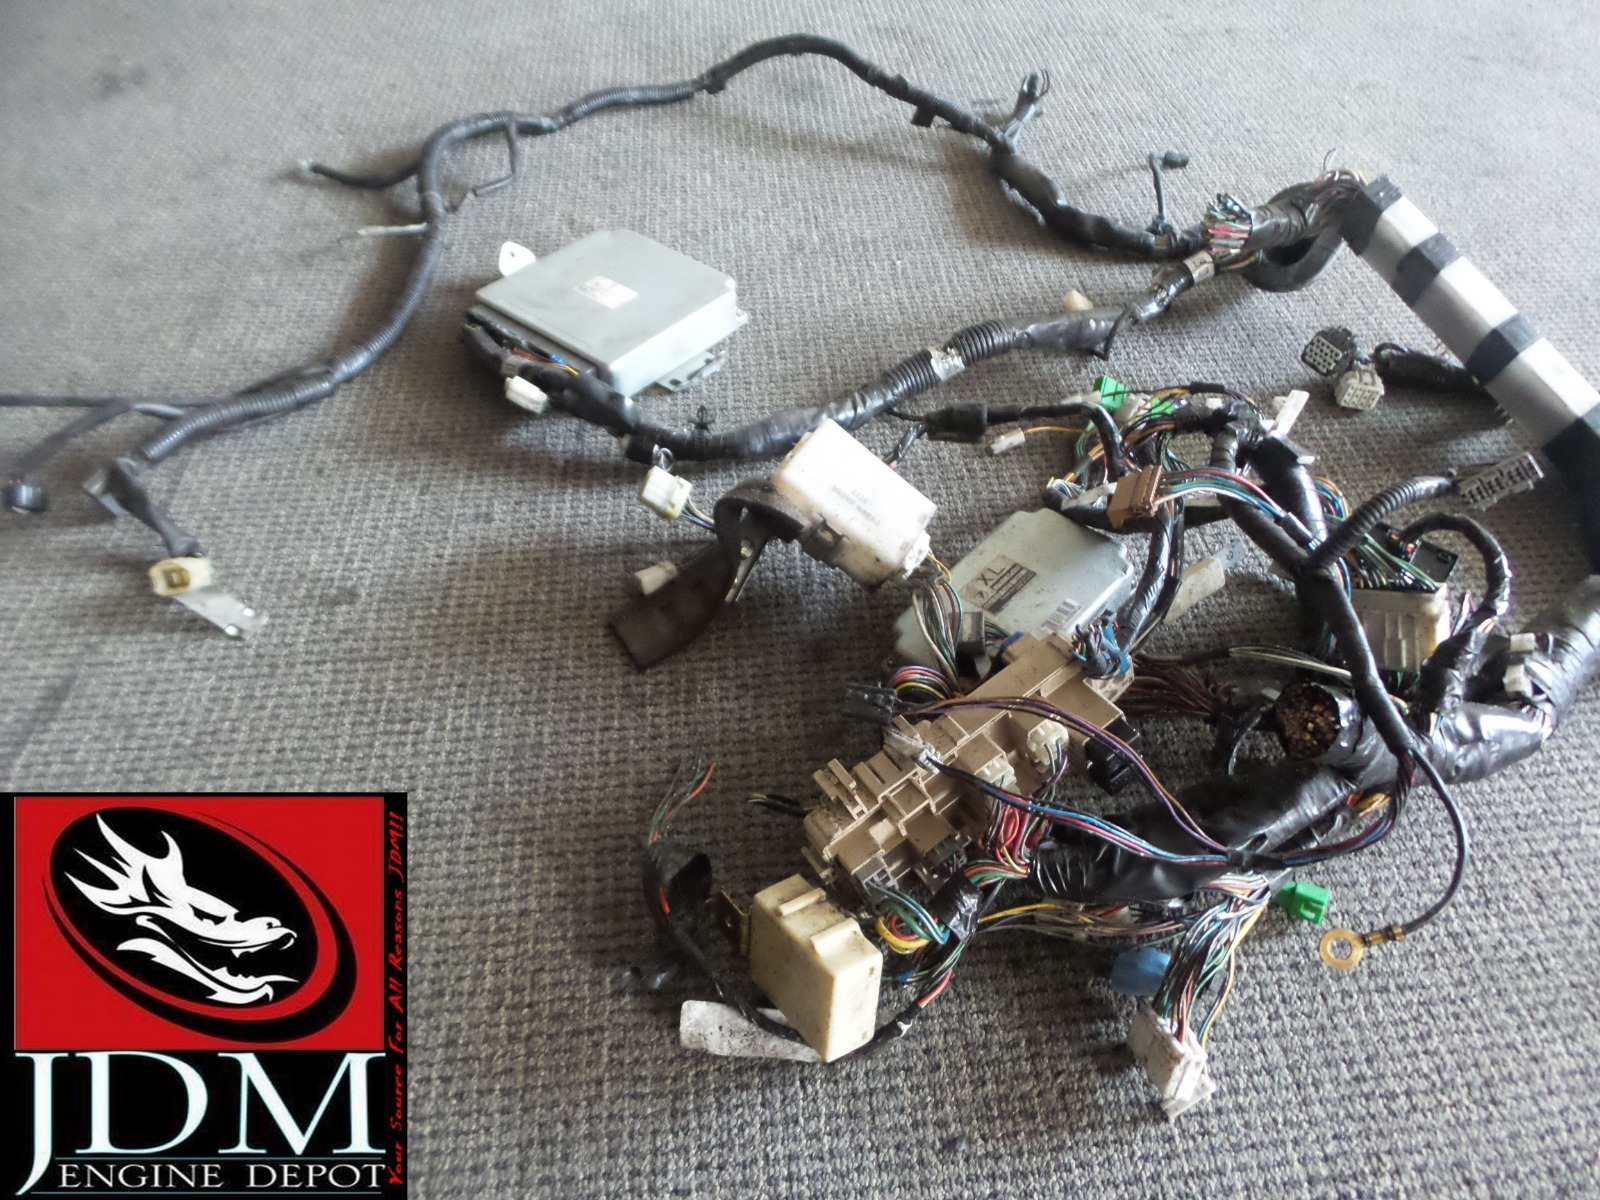 Find 98 01 Subaru Forester Turbo Wiring Harness With Ecu 3 22611 This Listing Is For A Used Imported From Japan